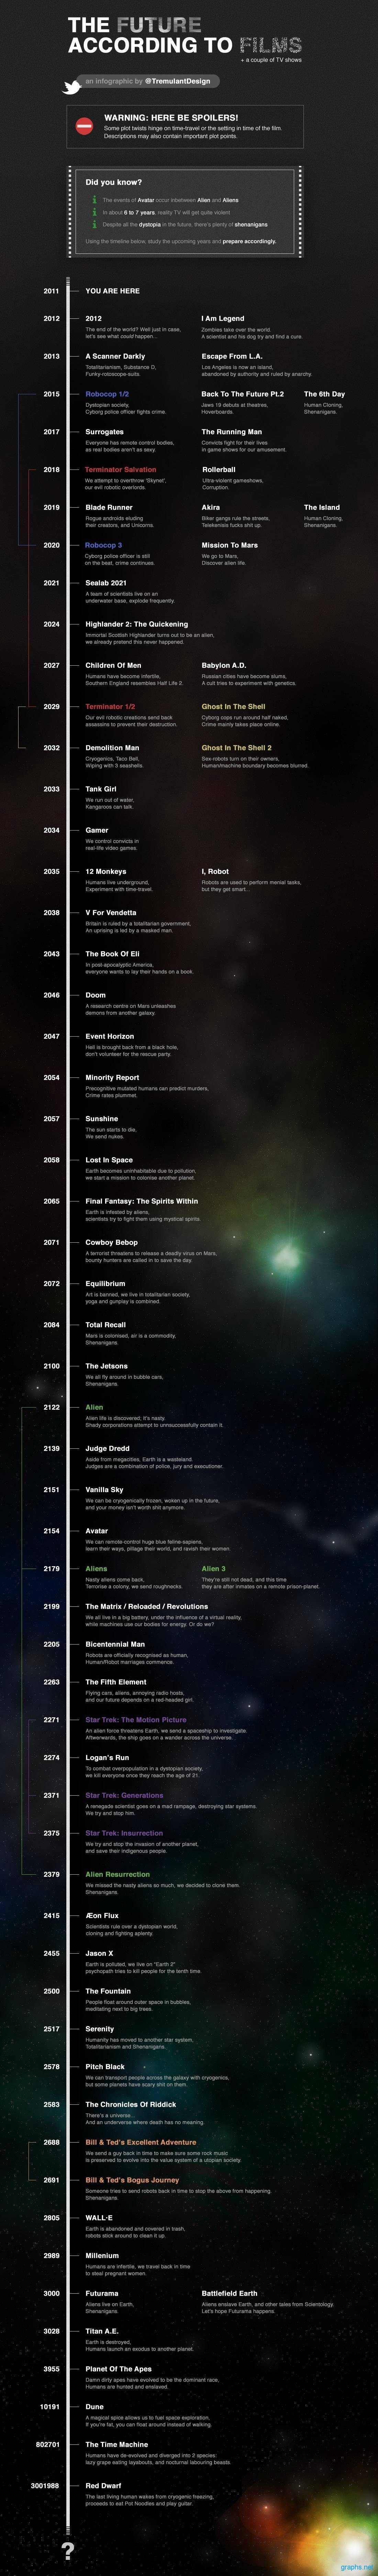 Future Timeline According to Movies